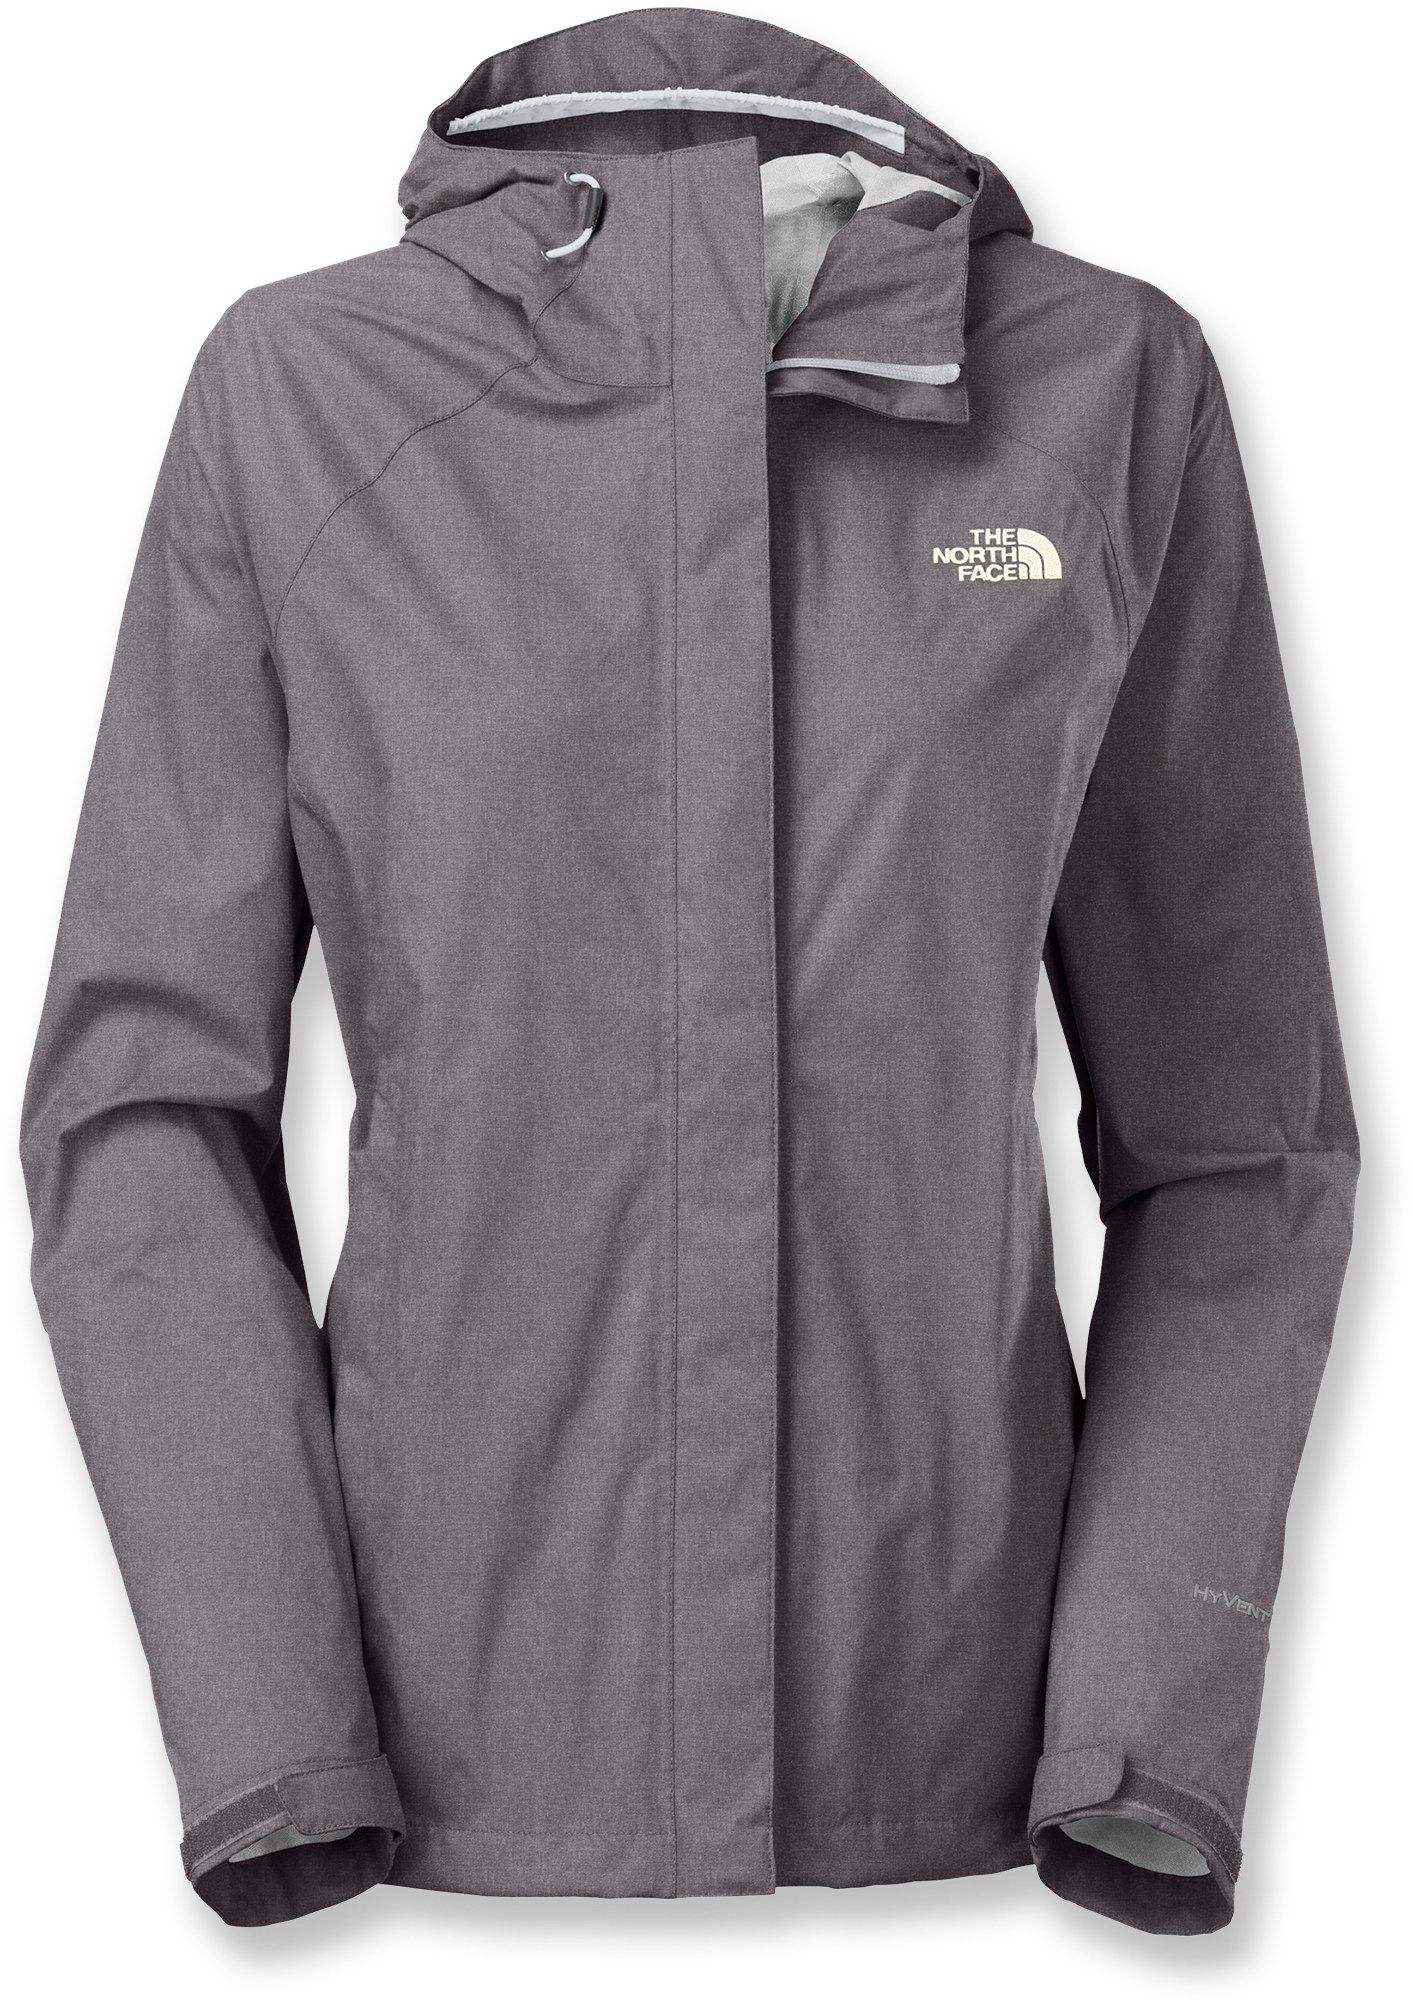 the north face venture rain jacket women 39 s high rise grey heather large christmas list. Black Bedroom Furniture Sets. Home Design Ideas